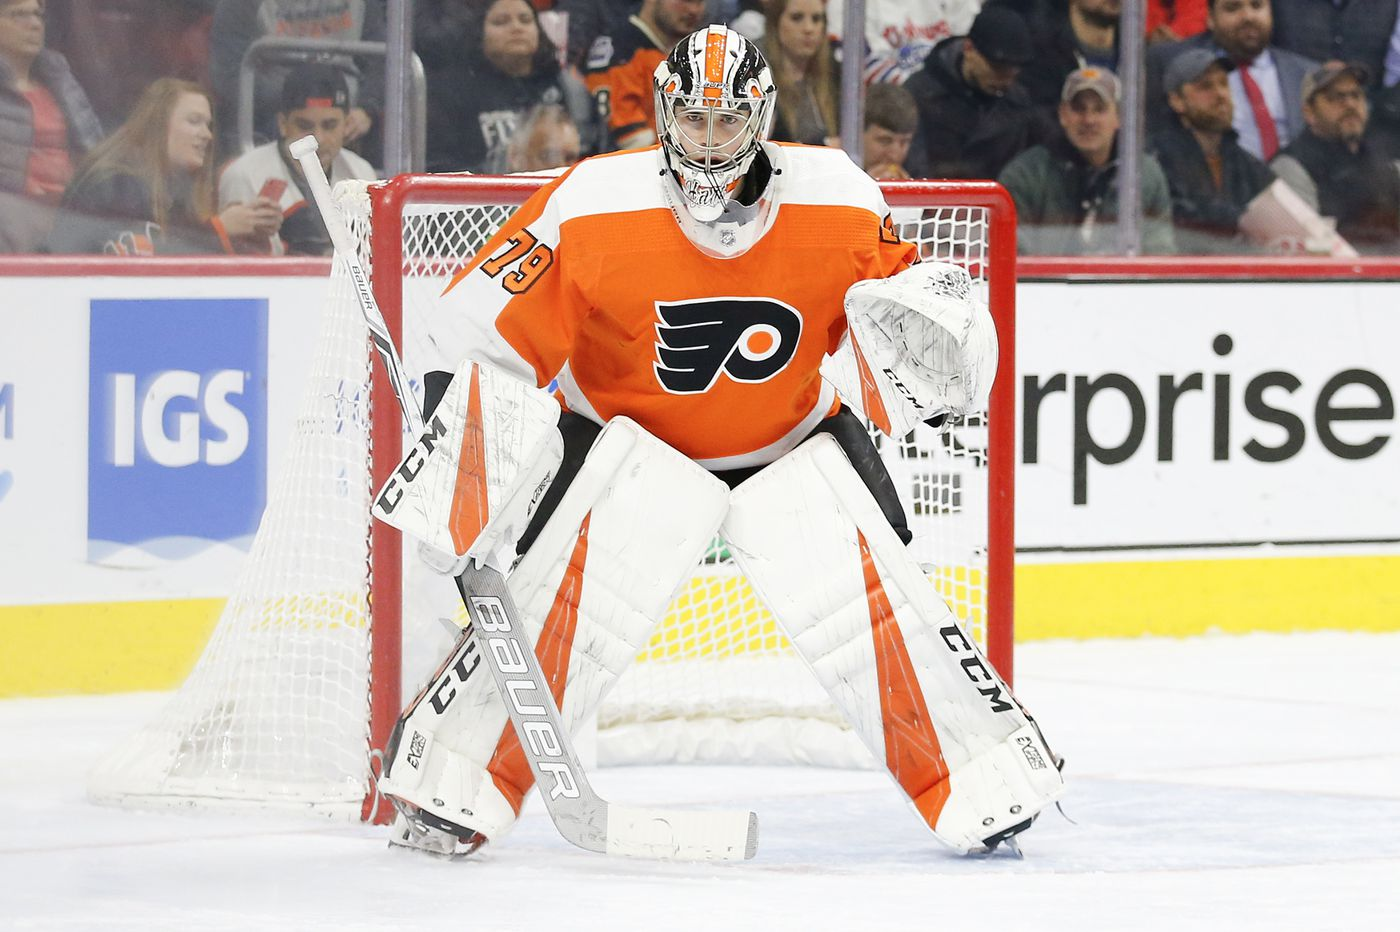 Should promising young goalie Carter Hart stay with the Flyers?